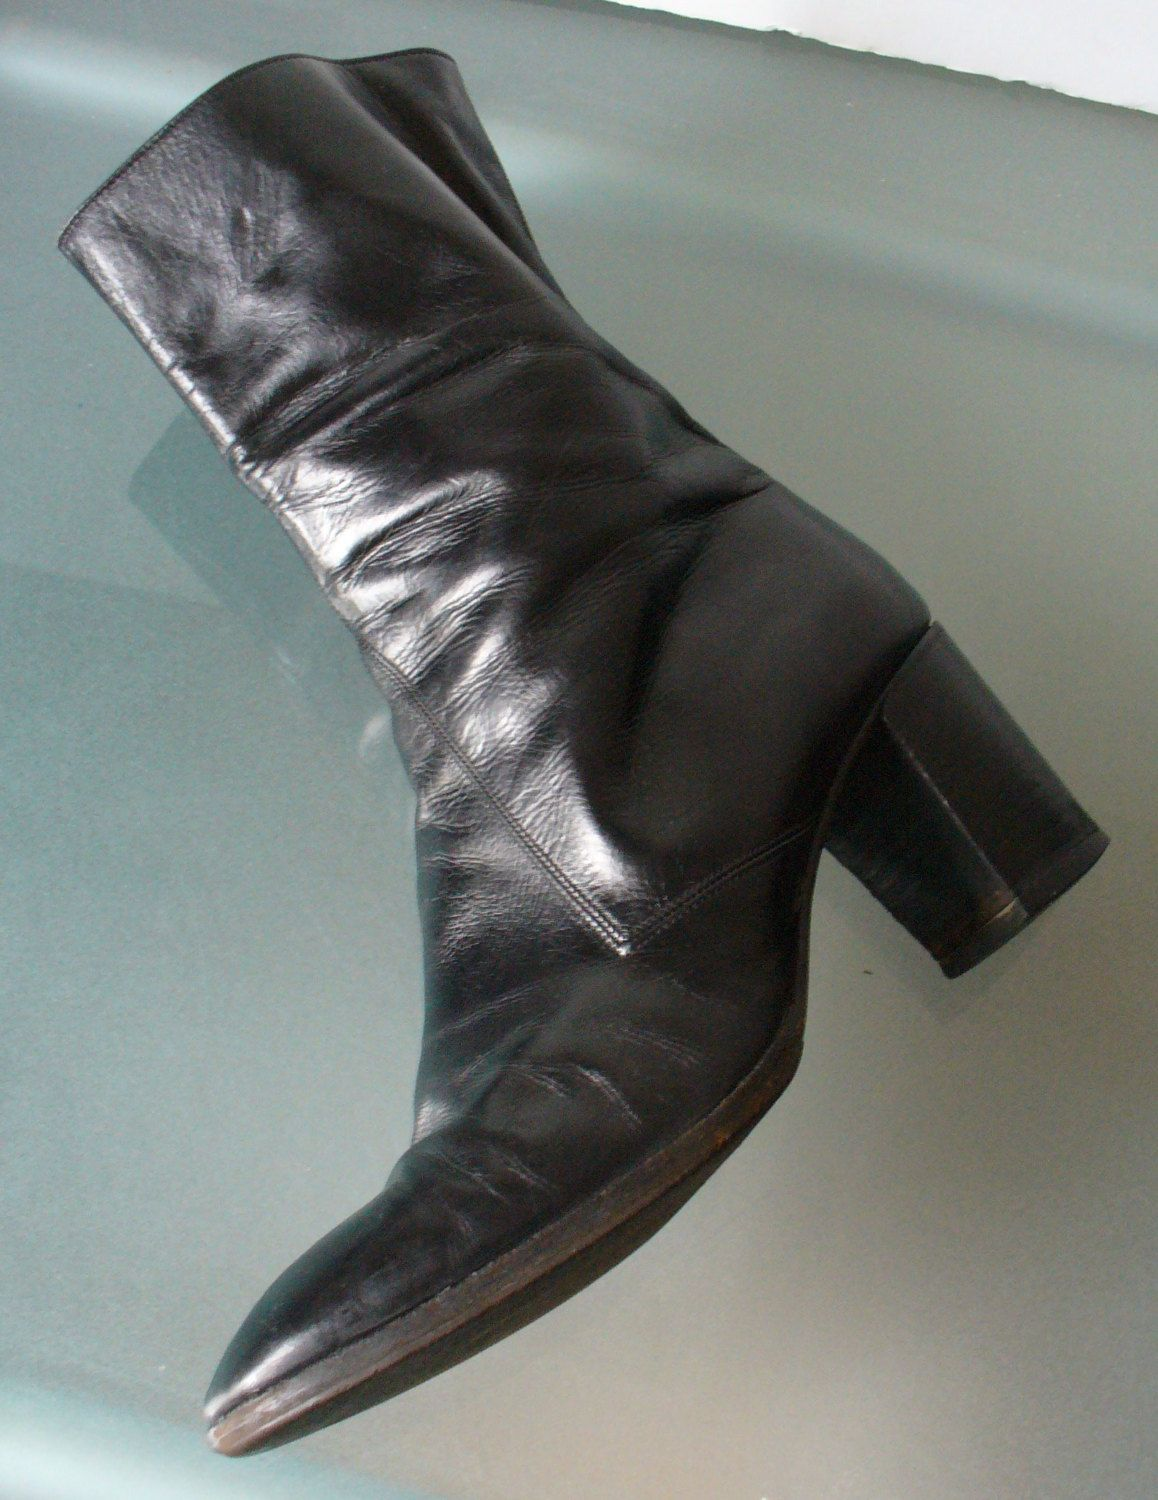 Rossetti Moda Zipper Boots Made in Italy Size 37 by